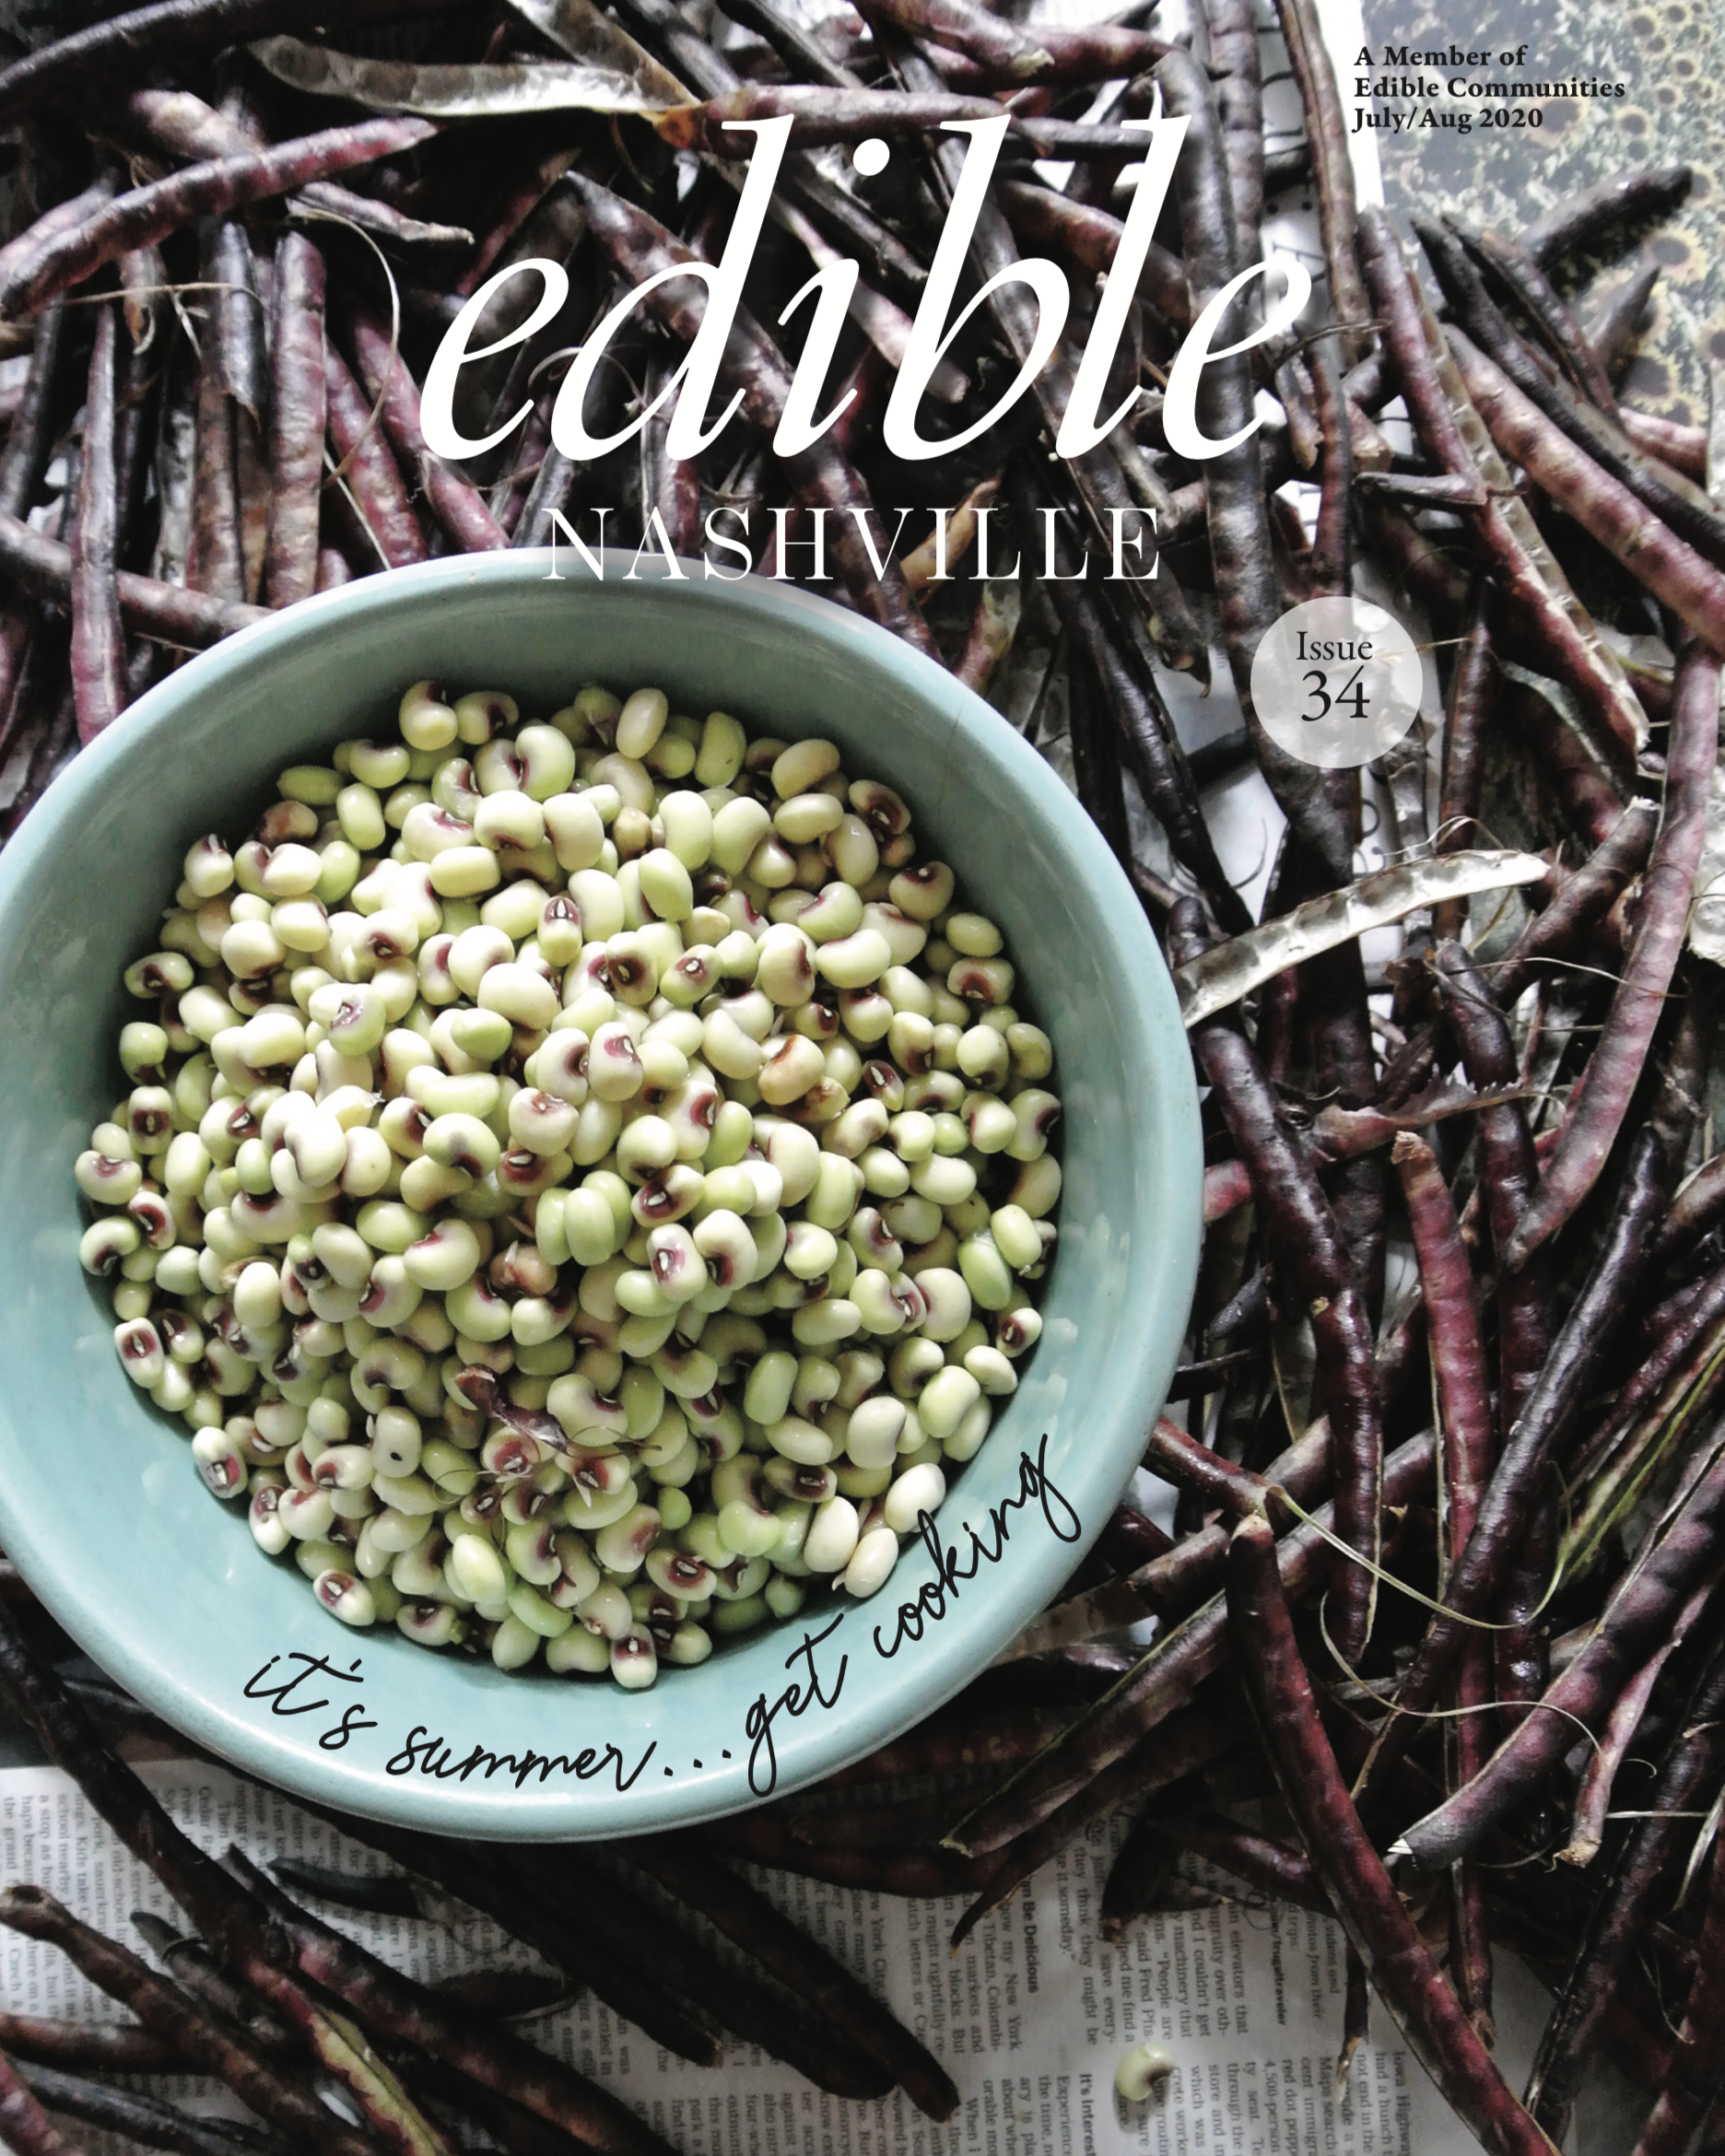 Edible Magazine, Cover Sept